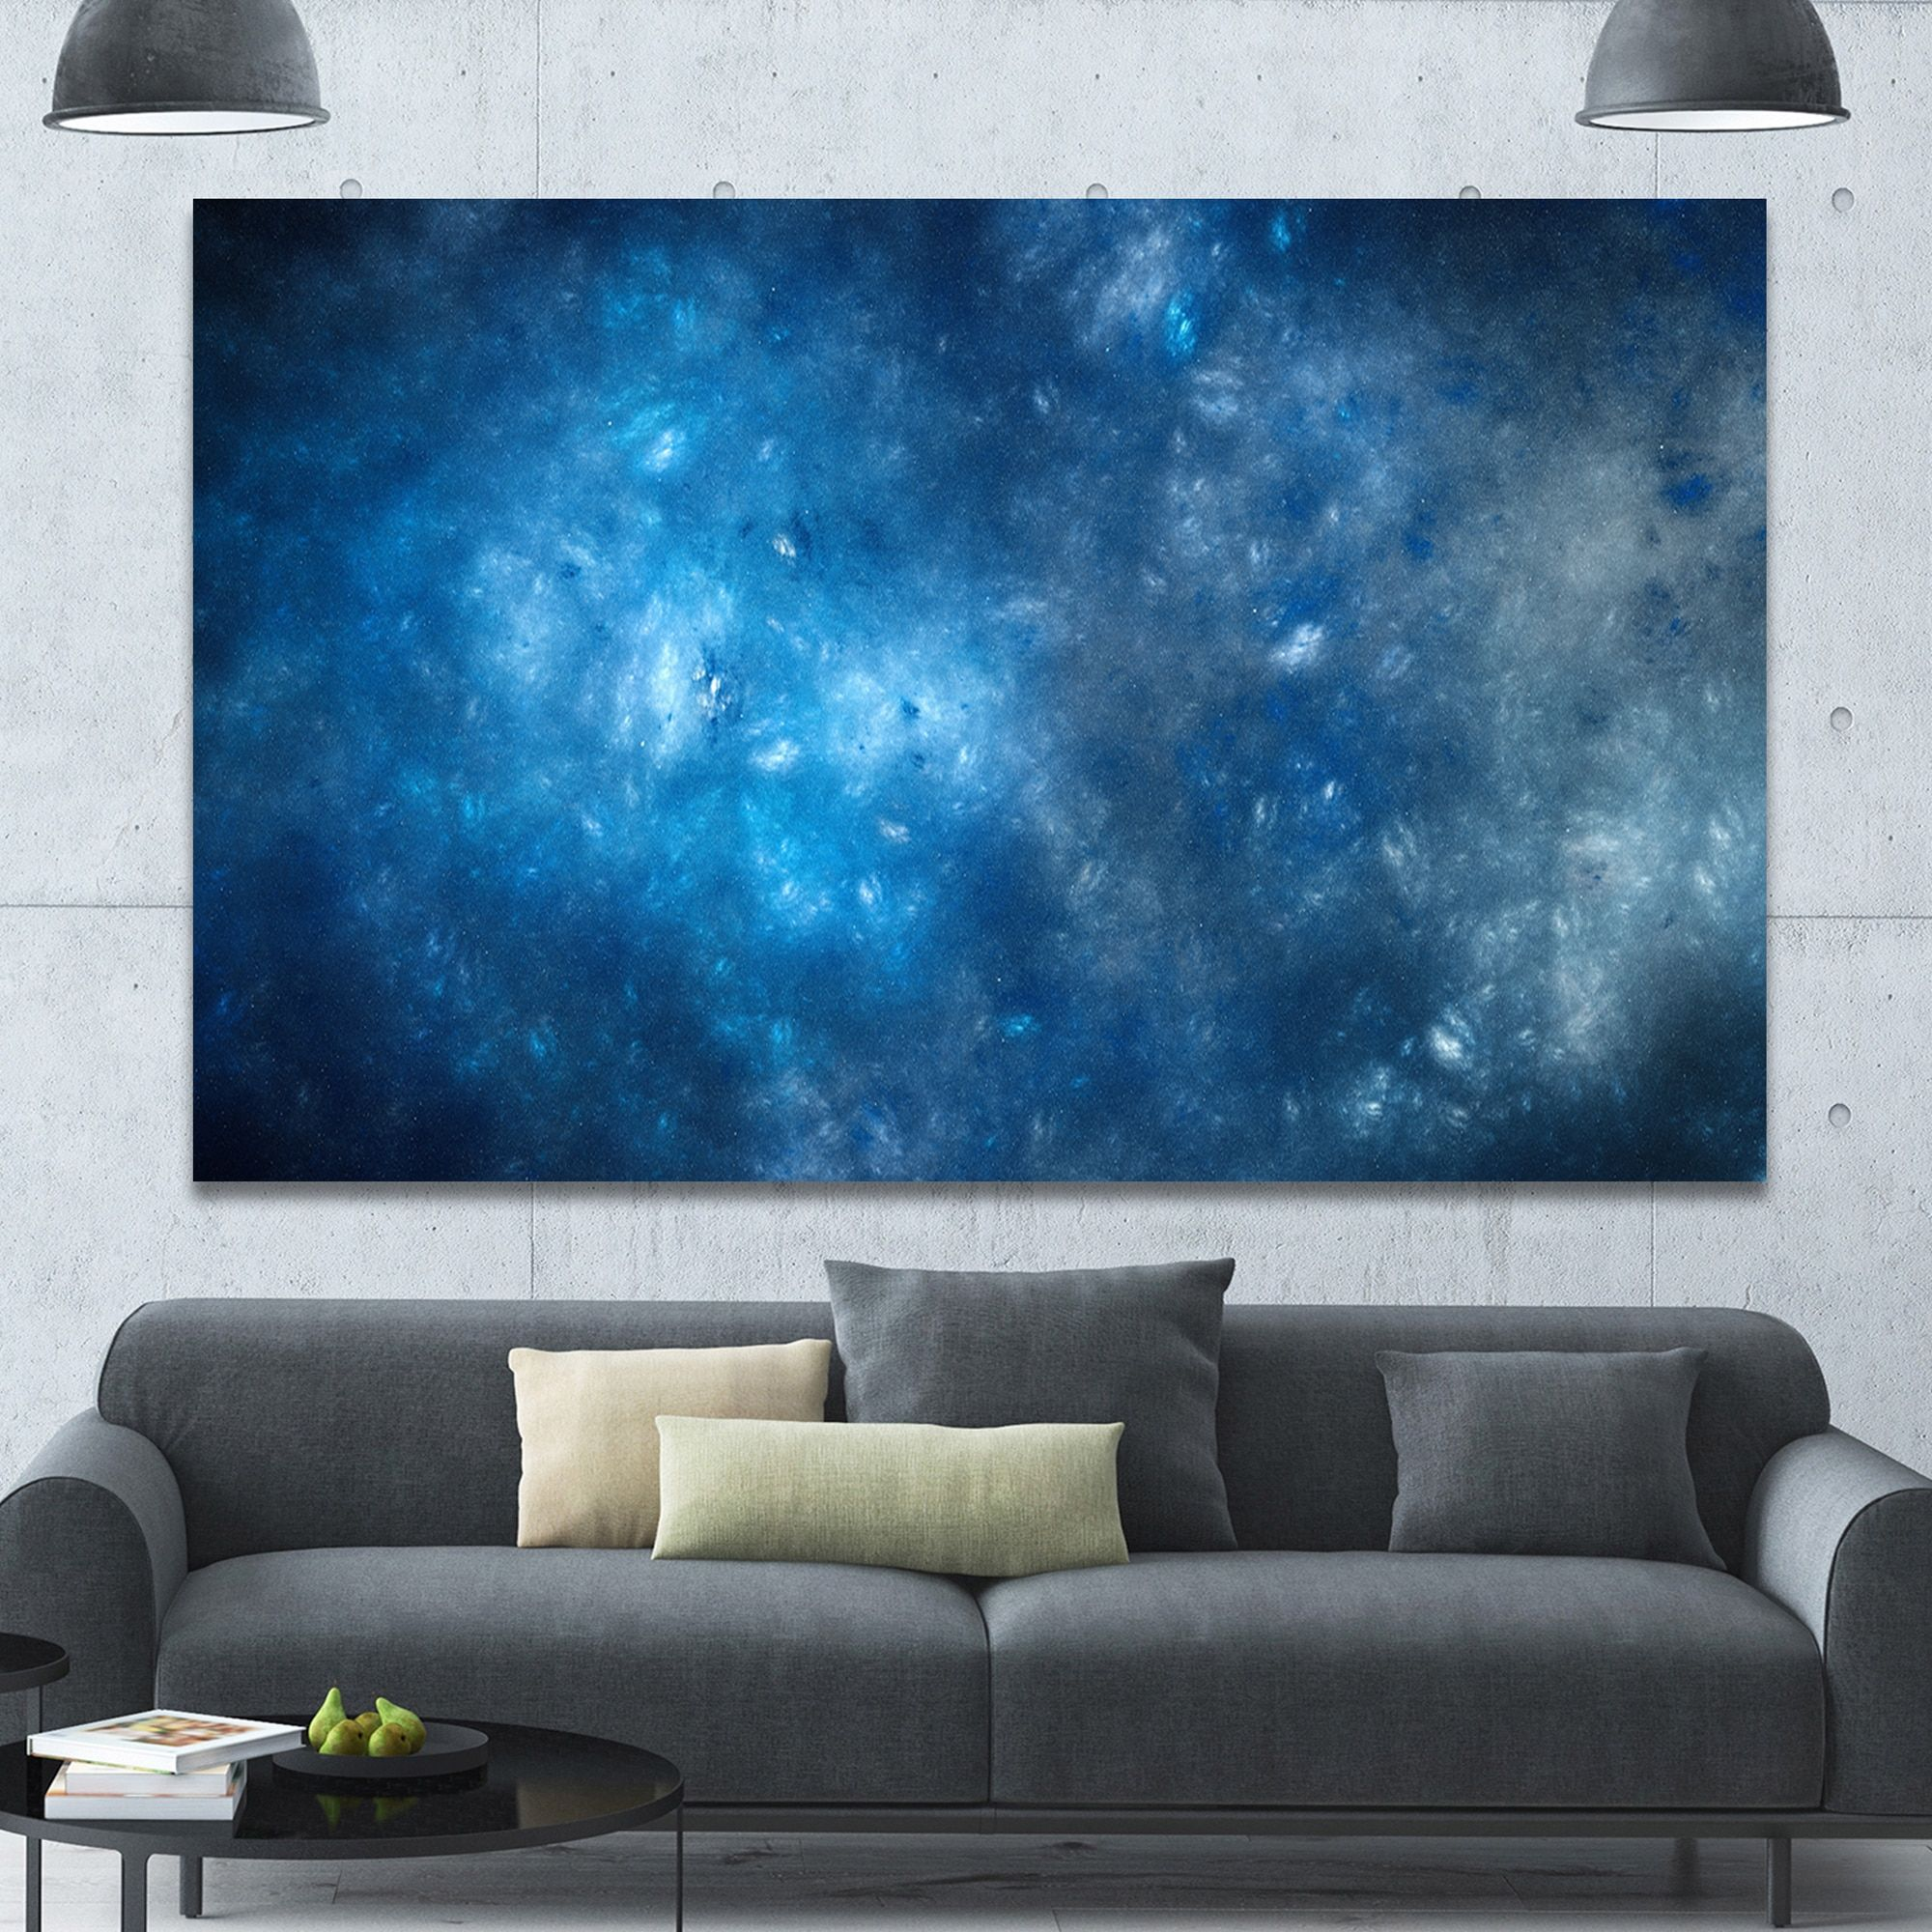 DESIGN ART Designart 'Clear Starry Fractal Sky' Abstract Artwork on Canvas